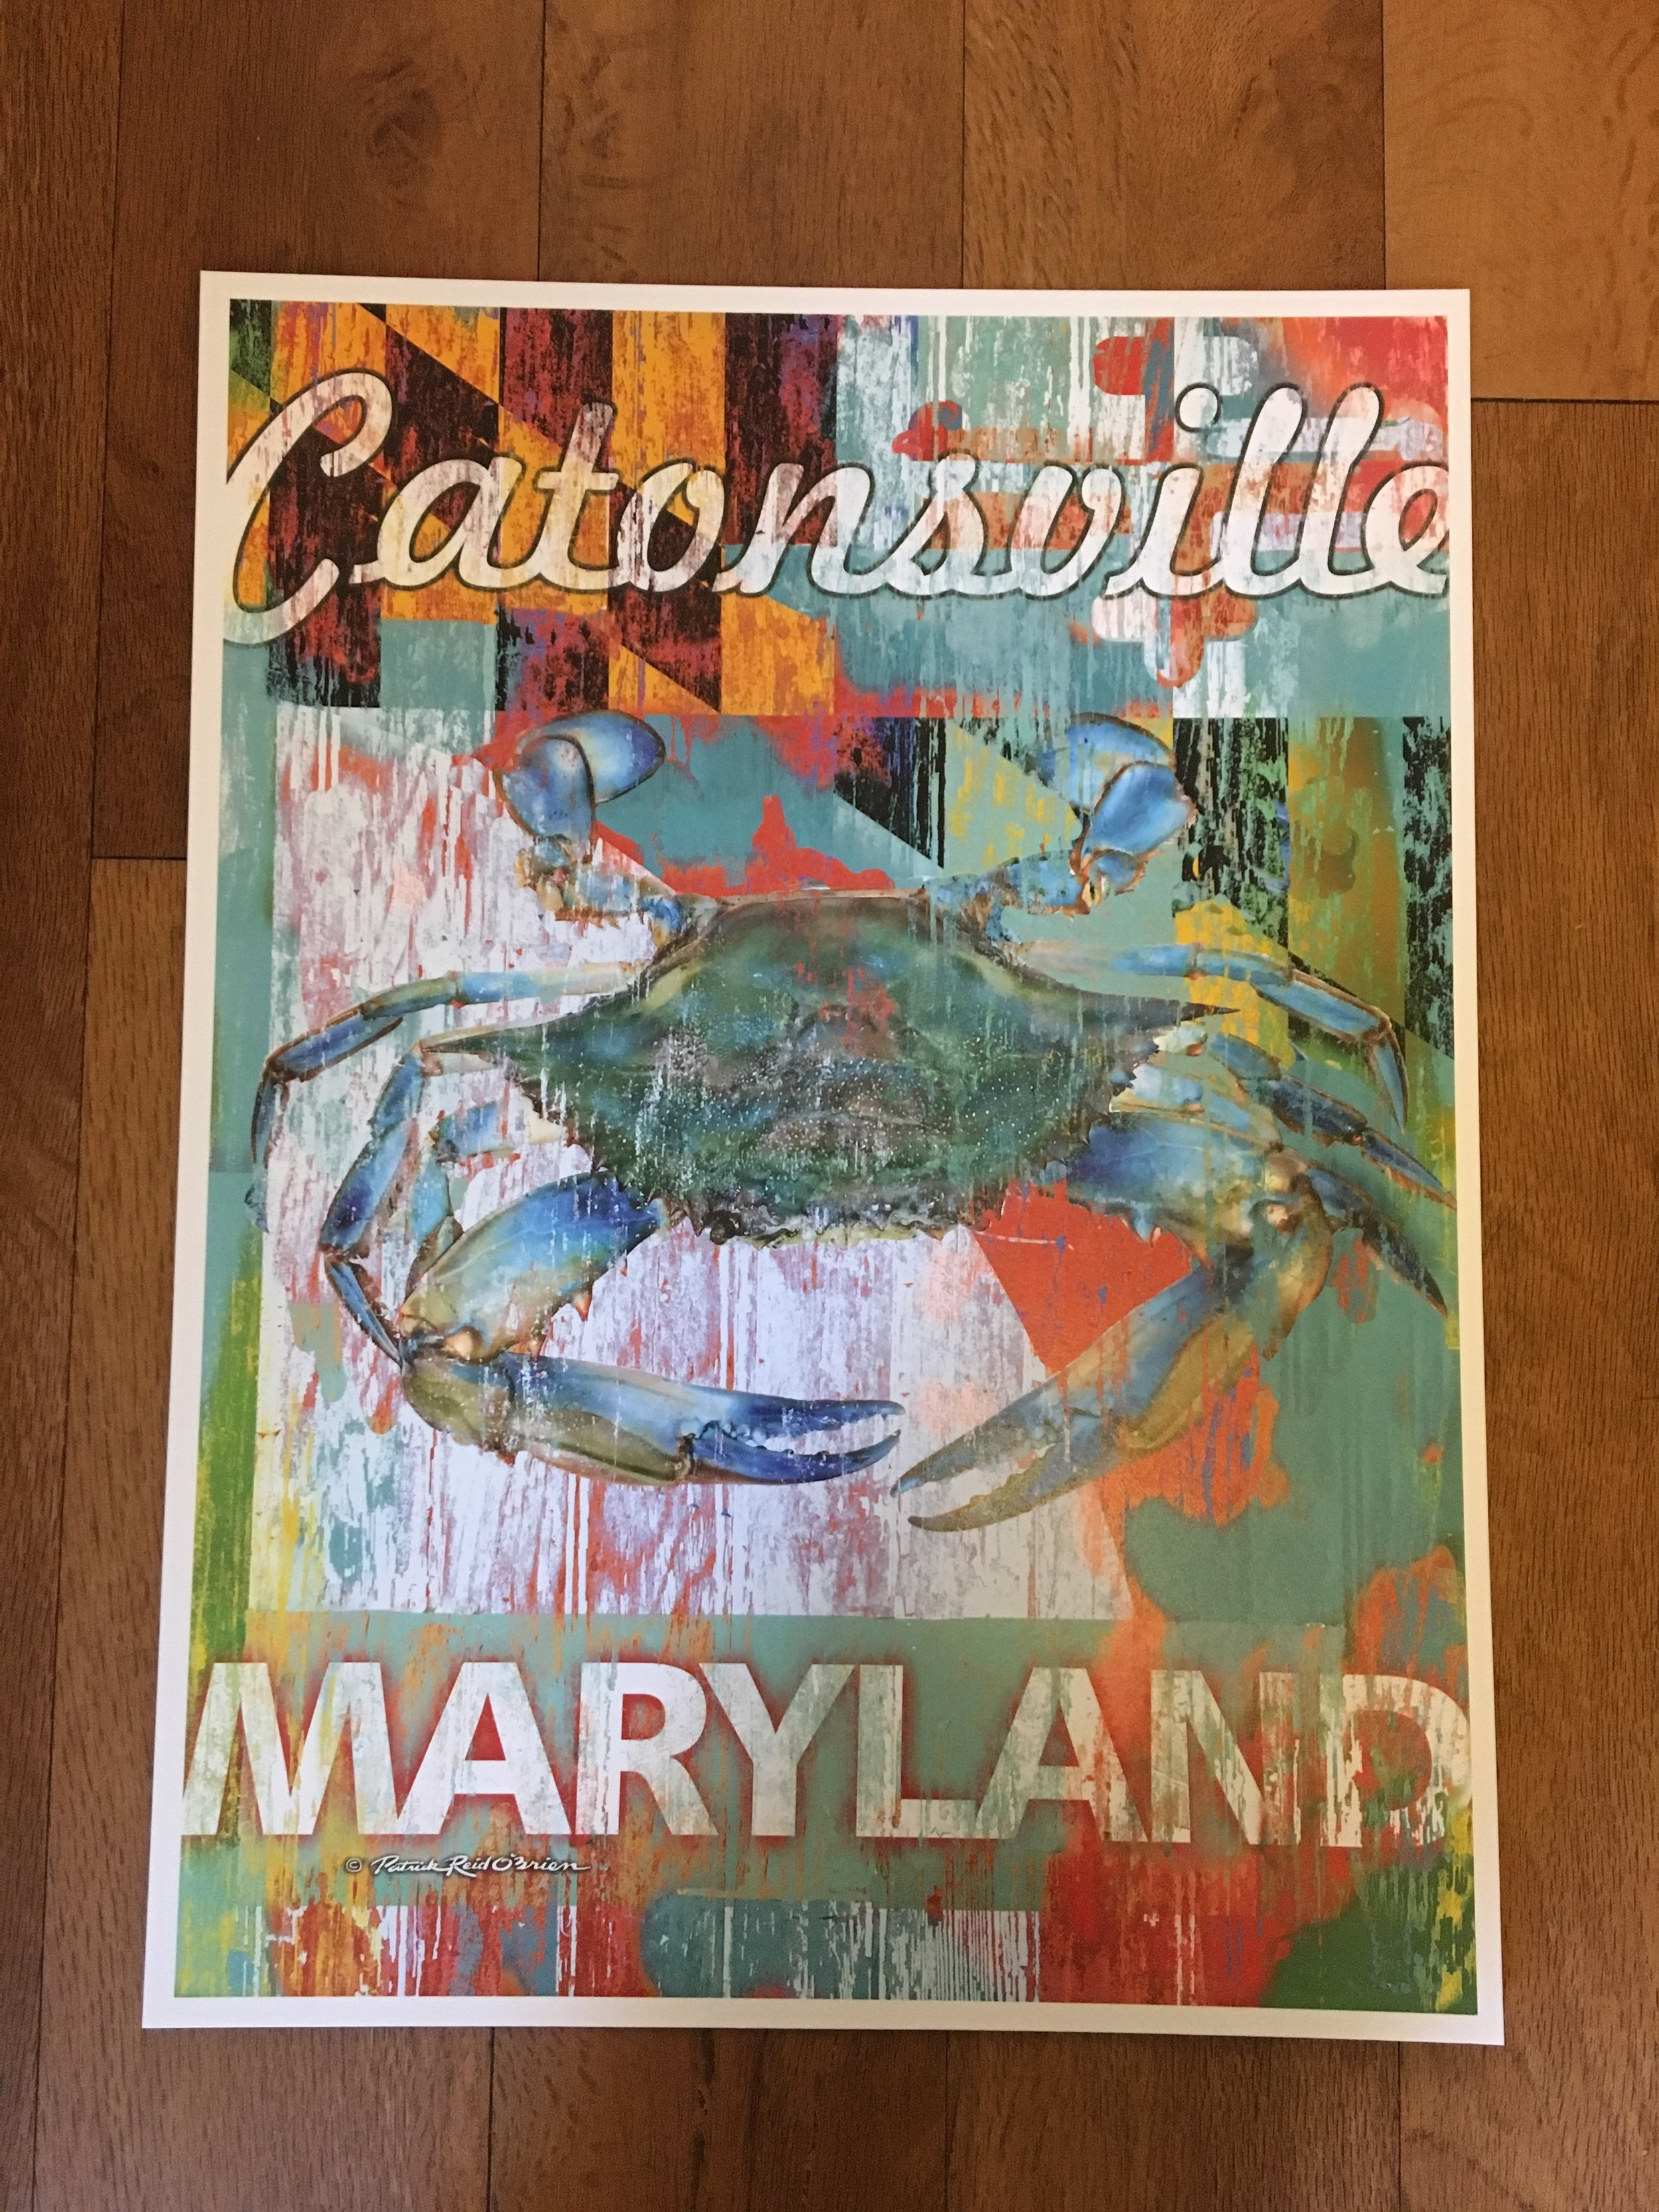 CATONSVILLE Maryland Crab Print by Patrick Reid O'Brien   12x16       $38.99 8 x 10       $20.99